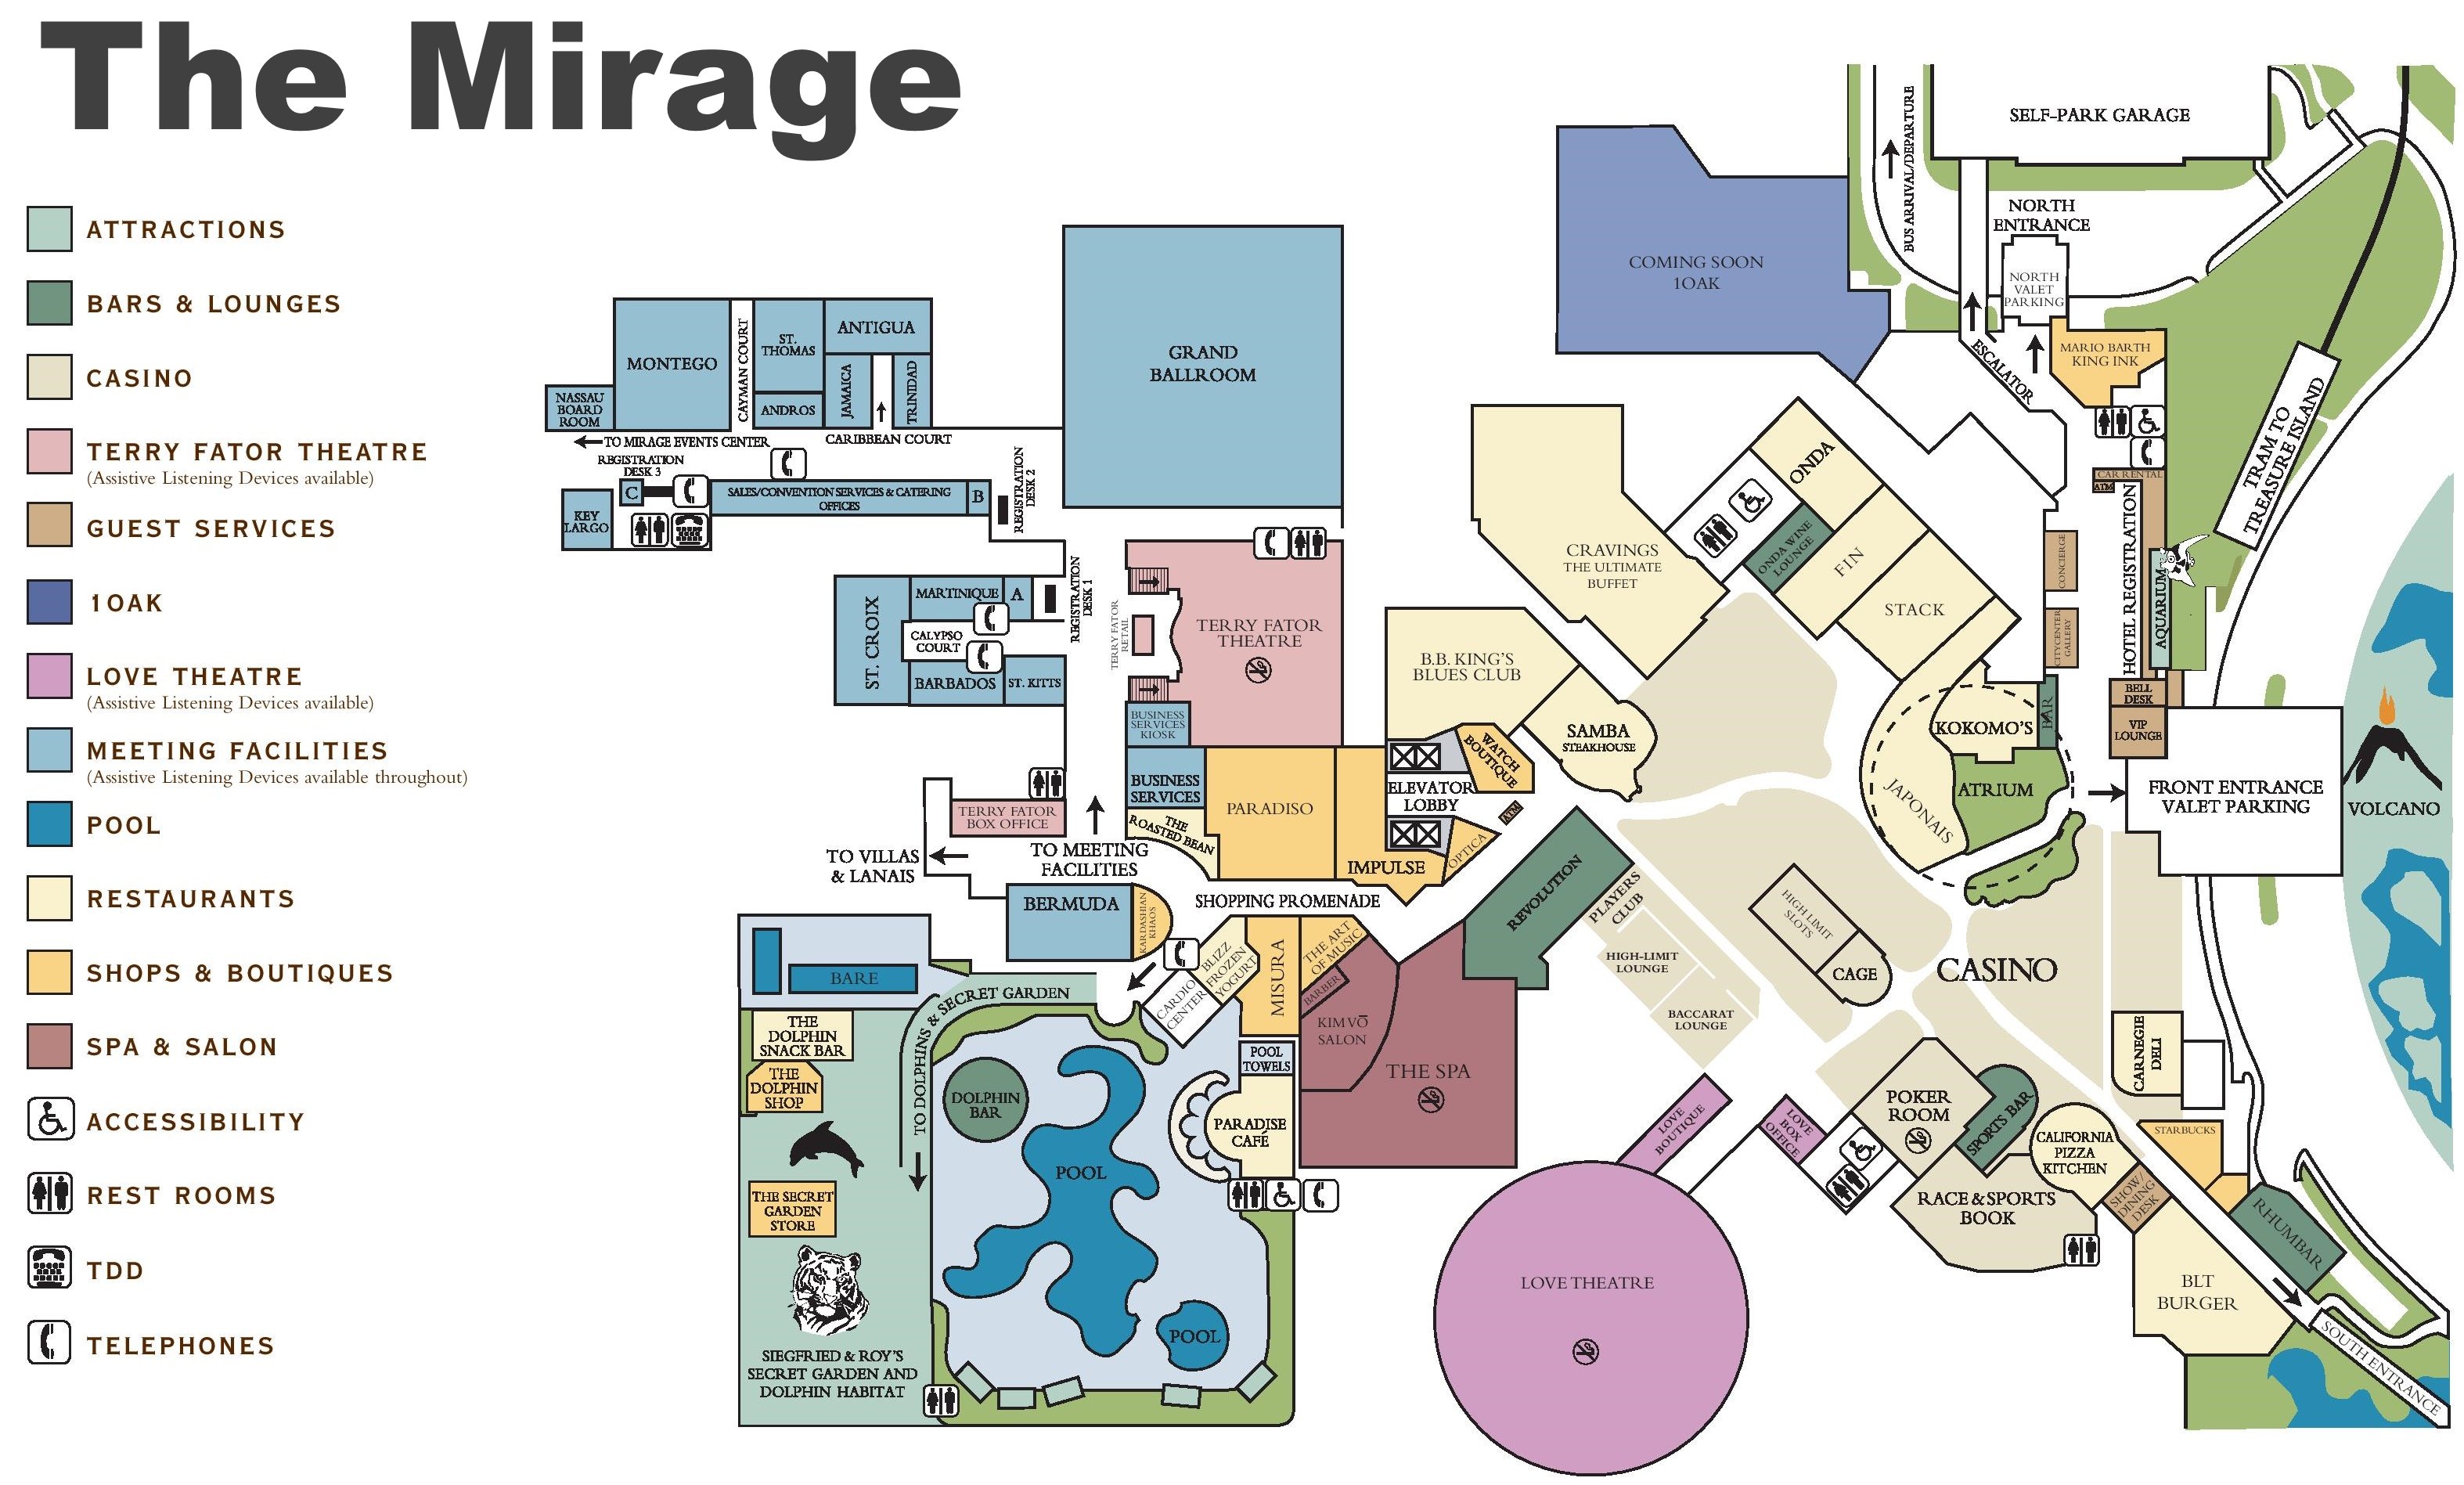 Las Vegas The Mirage Hotel Map - Las vegas map of hotels